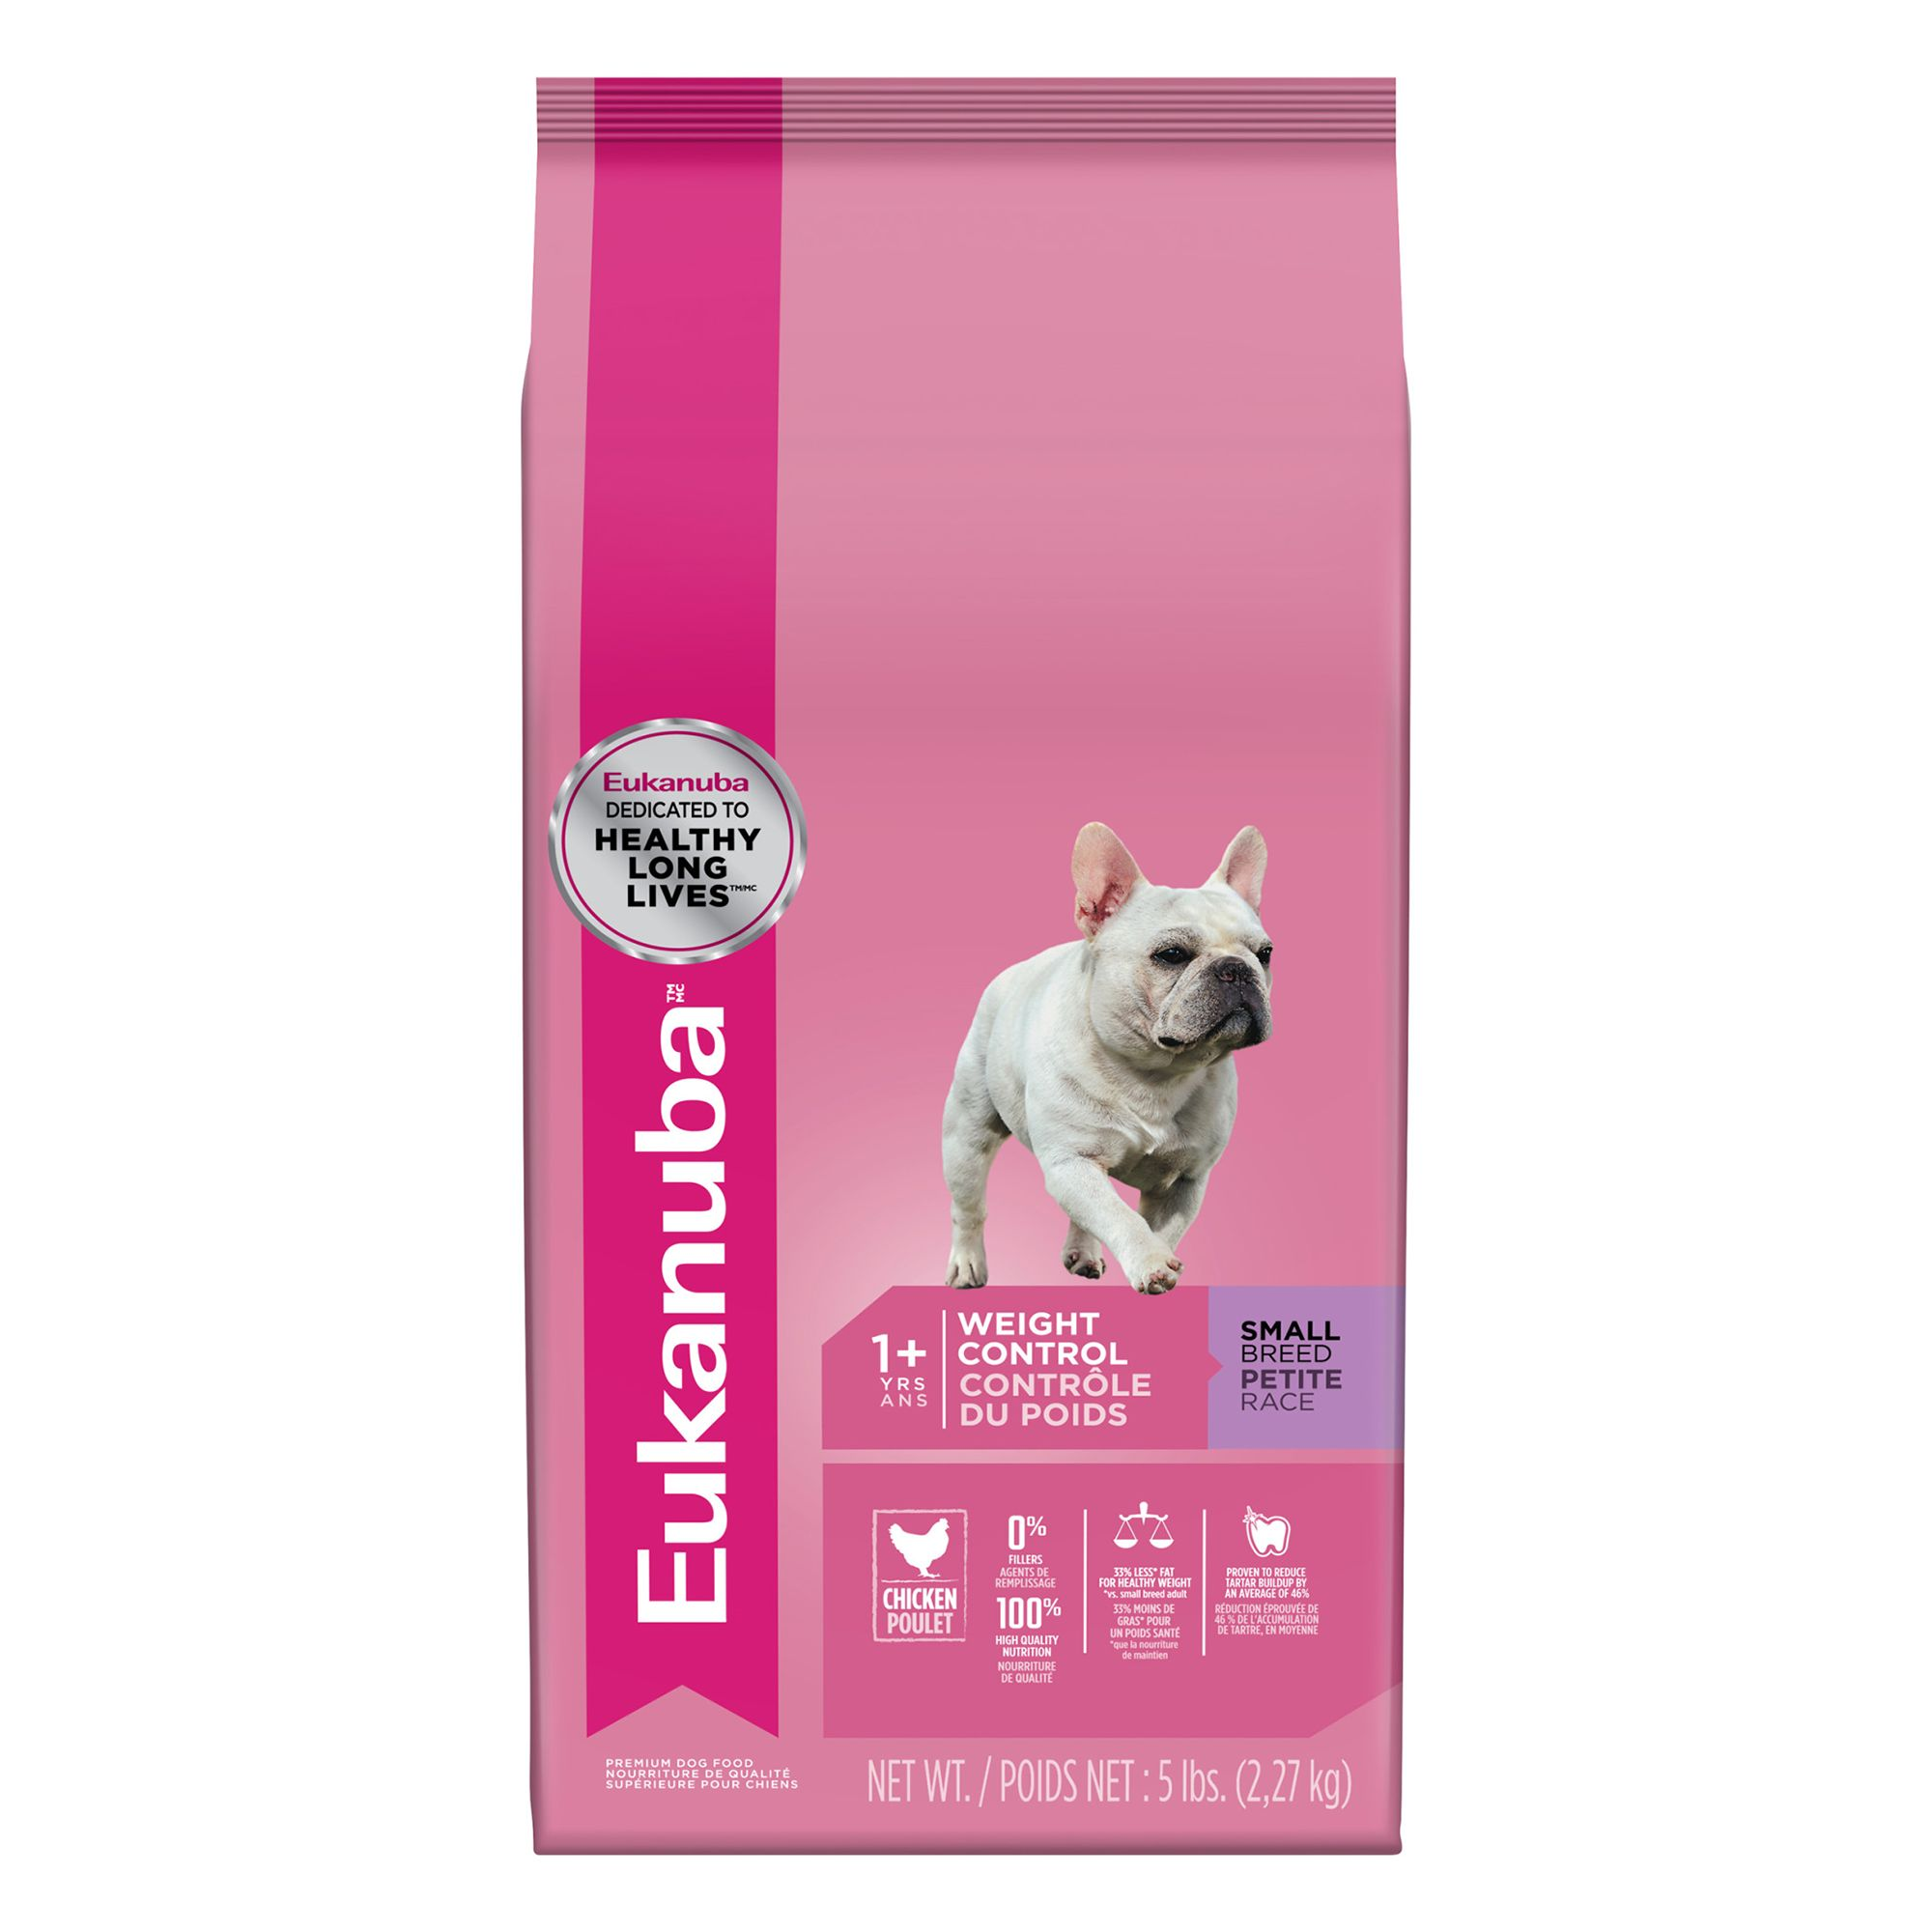 Eukanuba Adult Dog Food Chicken Weight Control Small Breed Size 5 Lb